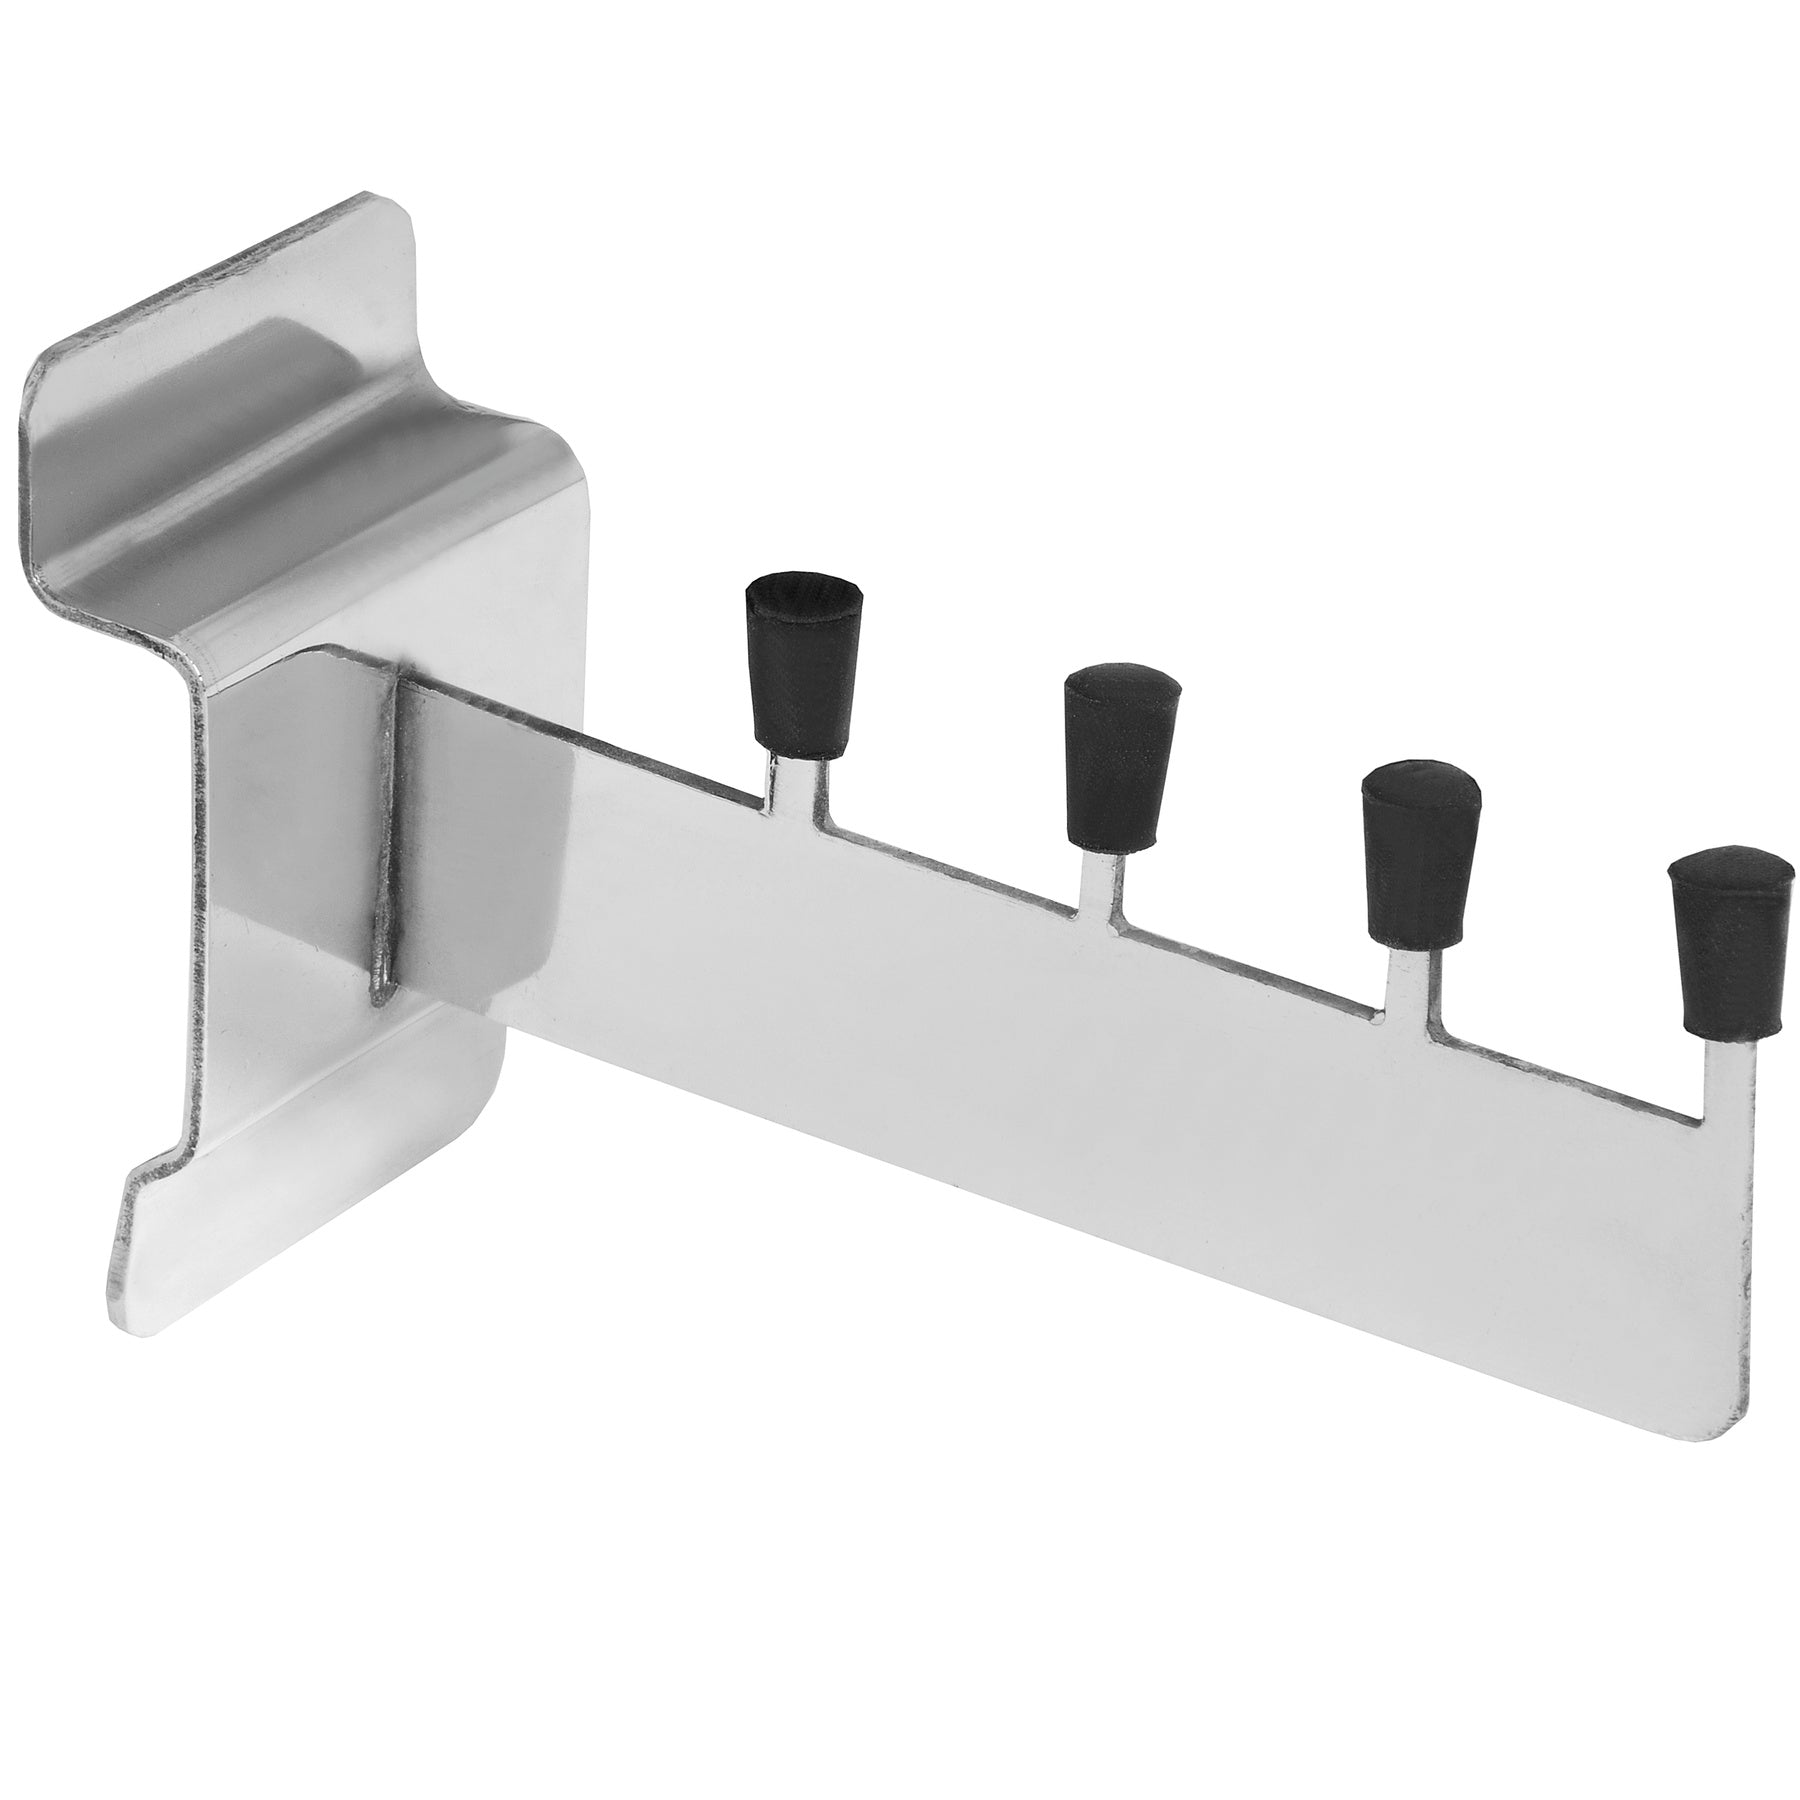 Steel Slat Wall Display Bracket